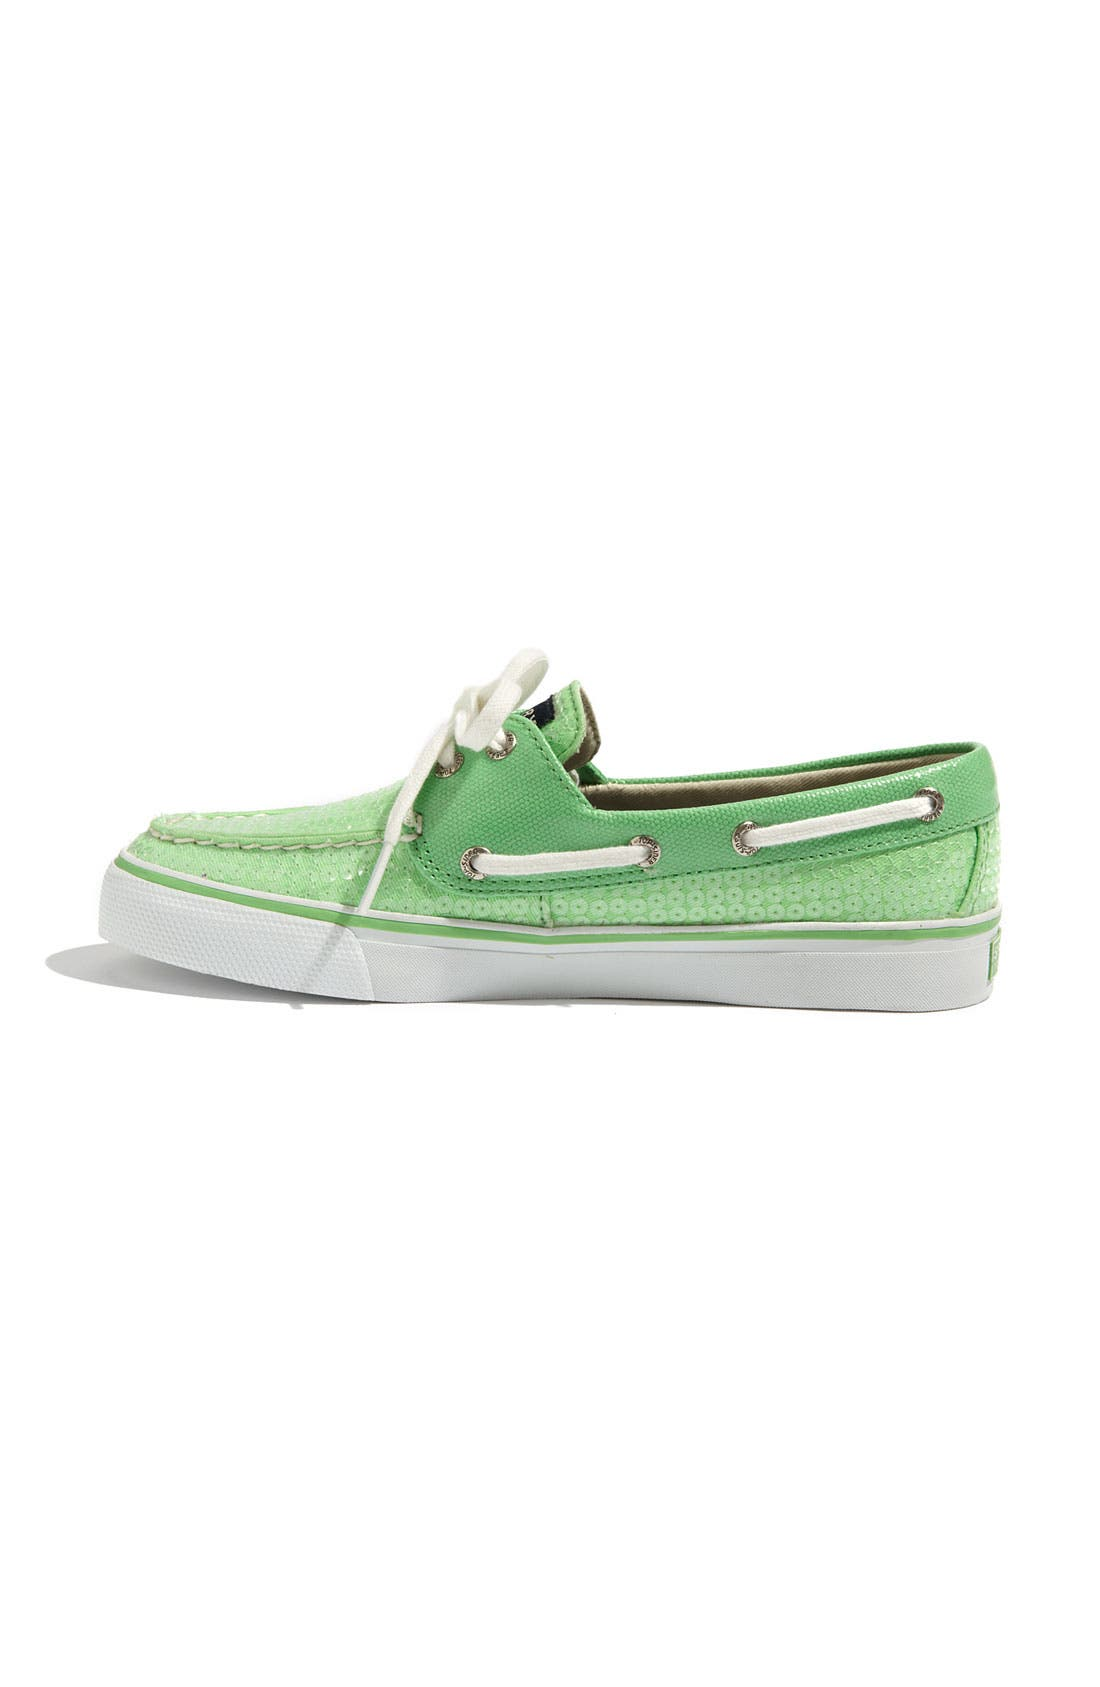 Top-Sider<sup>®</sup> 'Bahama' Sequined Boat Shoe,                             Alternate thumbnail 102, color,